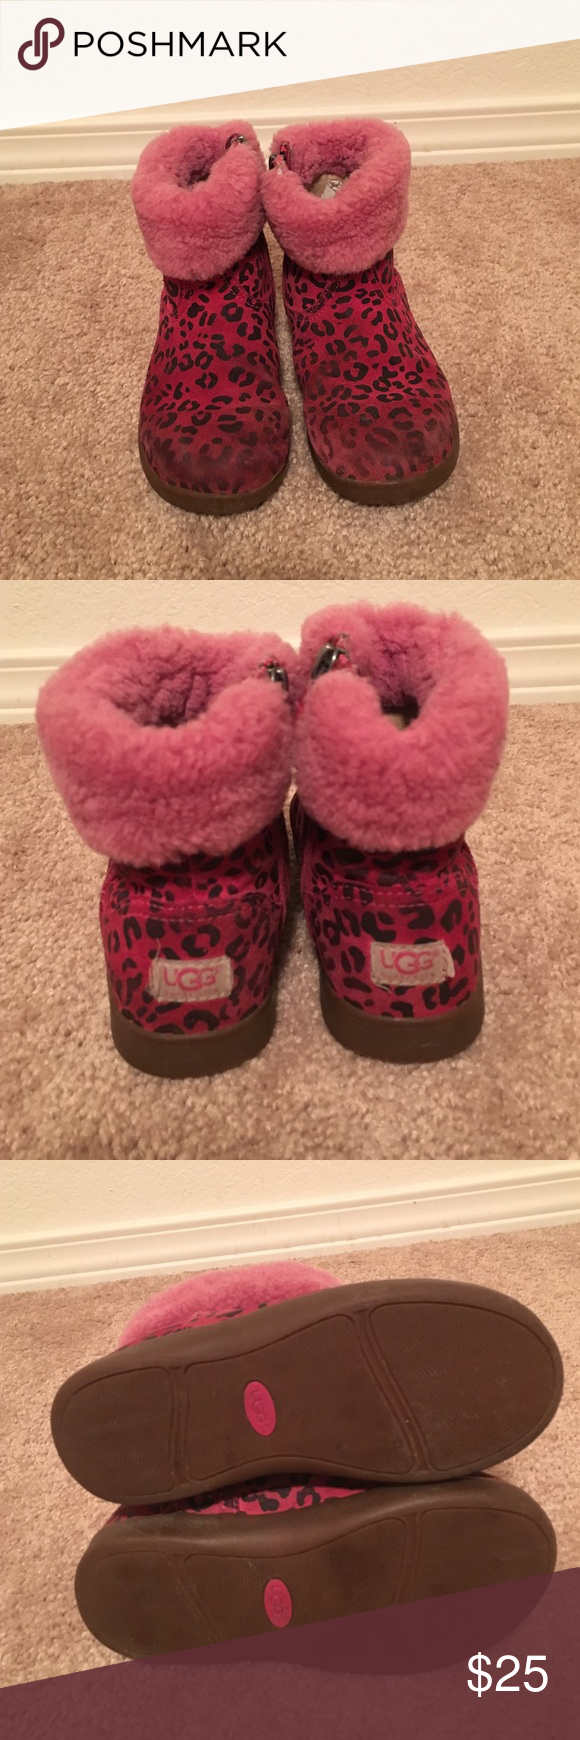 UGG Boots! UGG Boots!   Toddler girls.  Hot pink with black spots.  These have been well love but have a lot of life left to give!   Zippers work. No holes but lots of staining. See pics for more detail make me an offer! UGG Shoes Boots